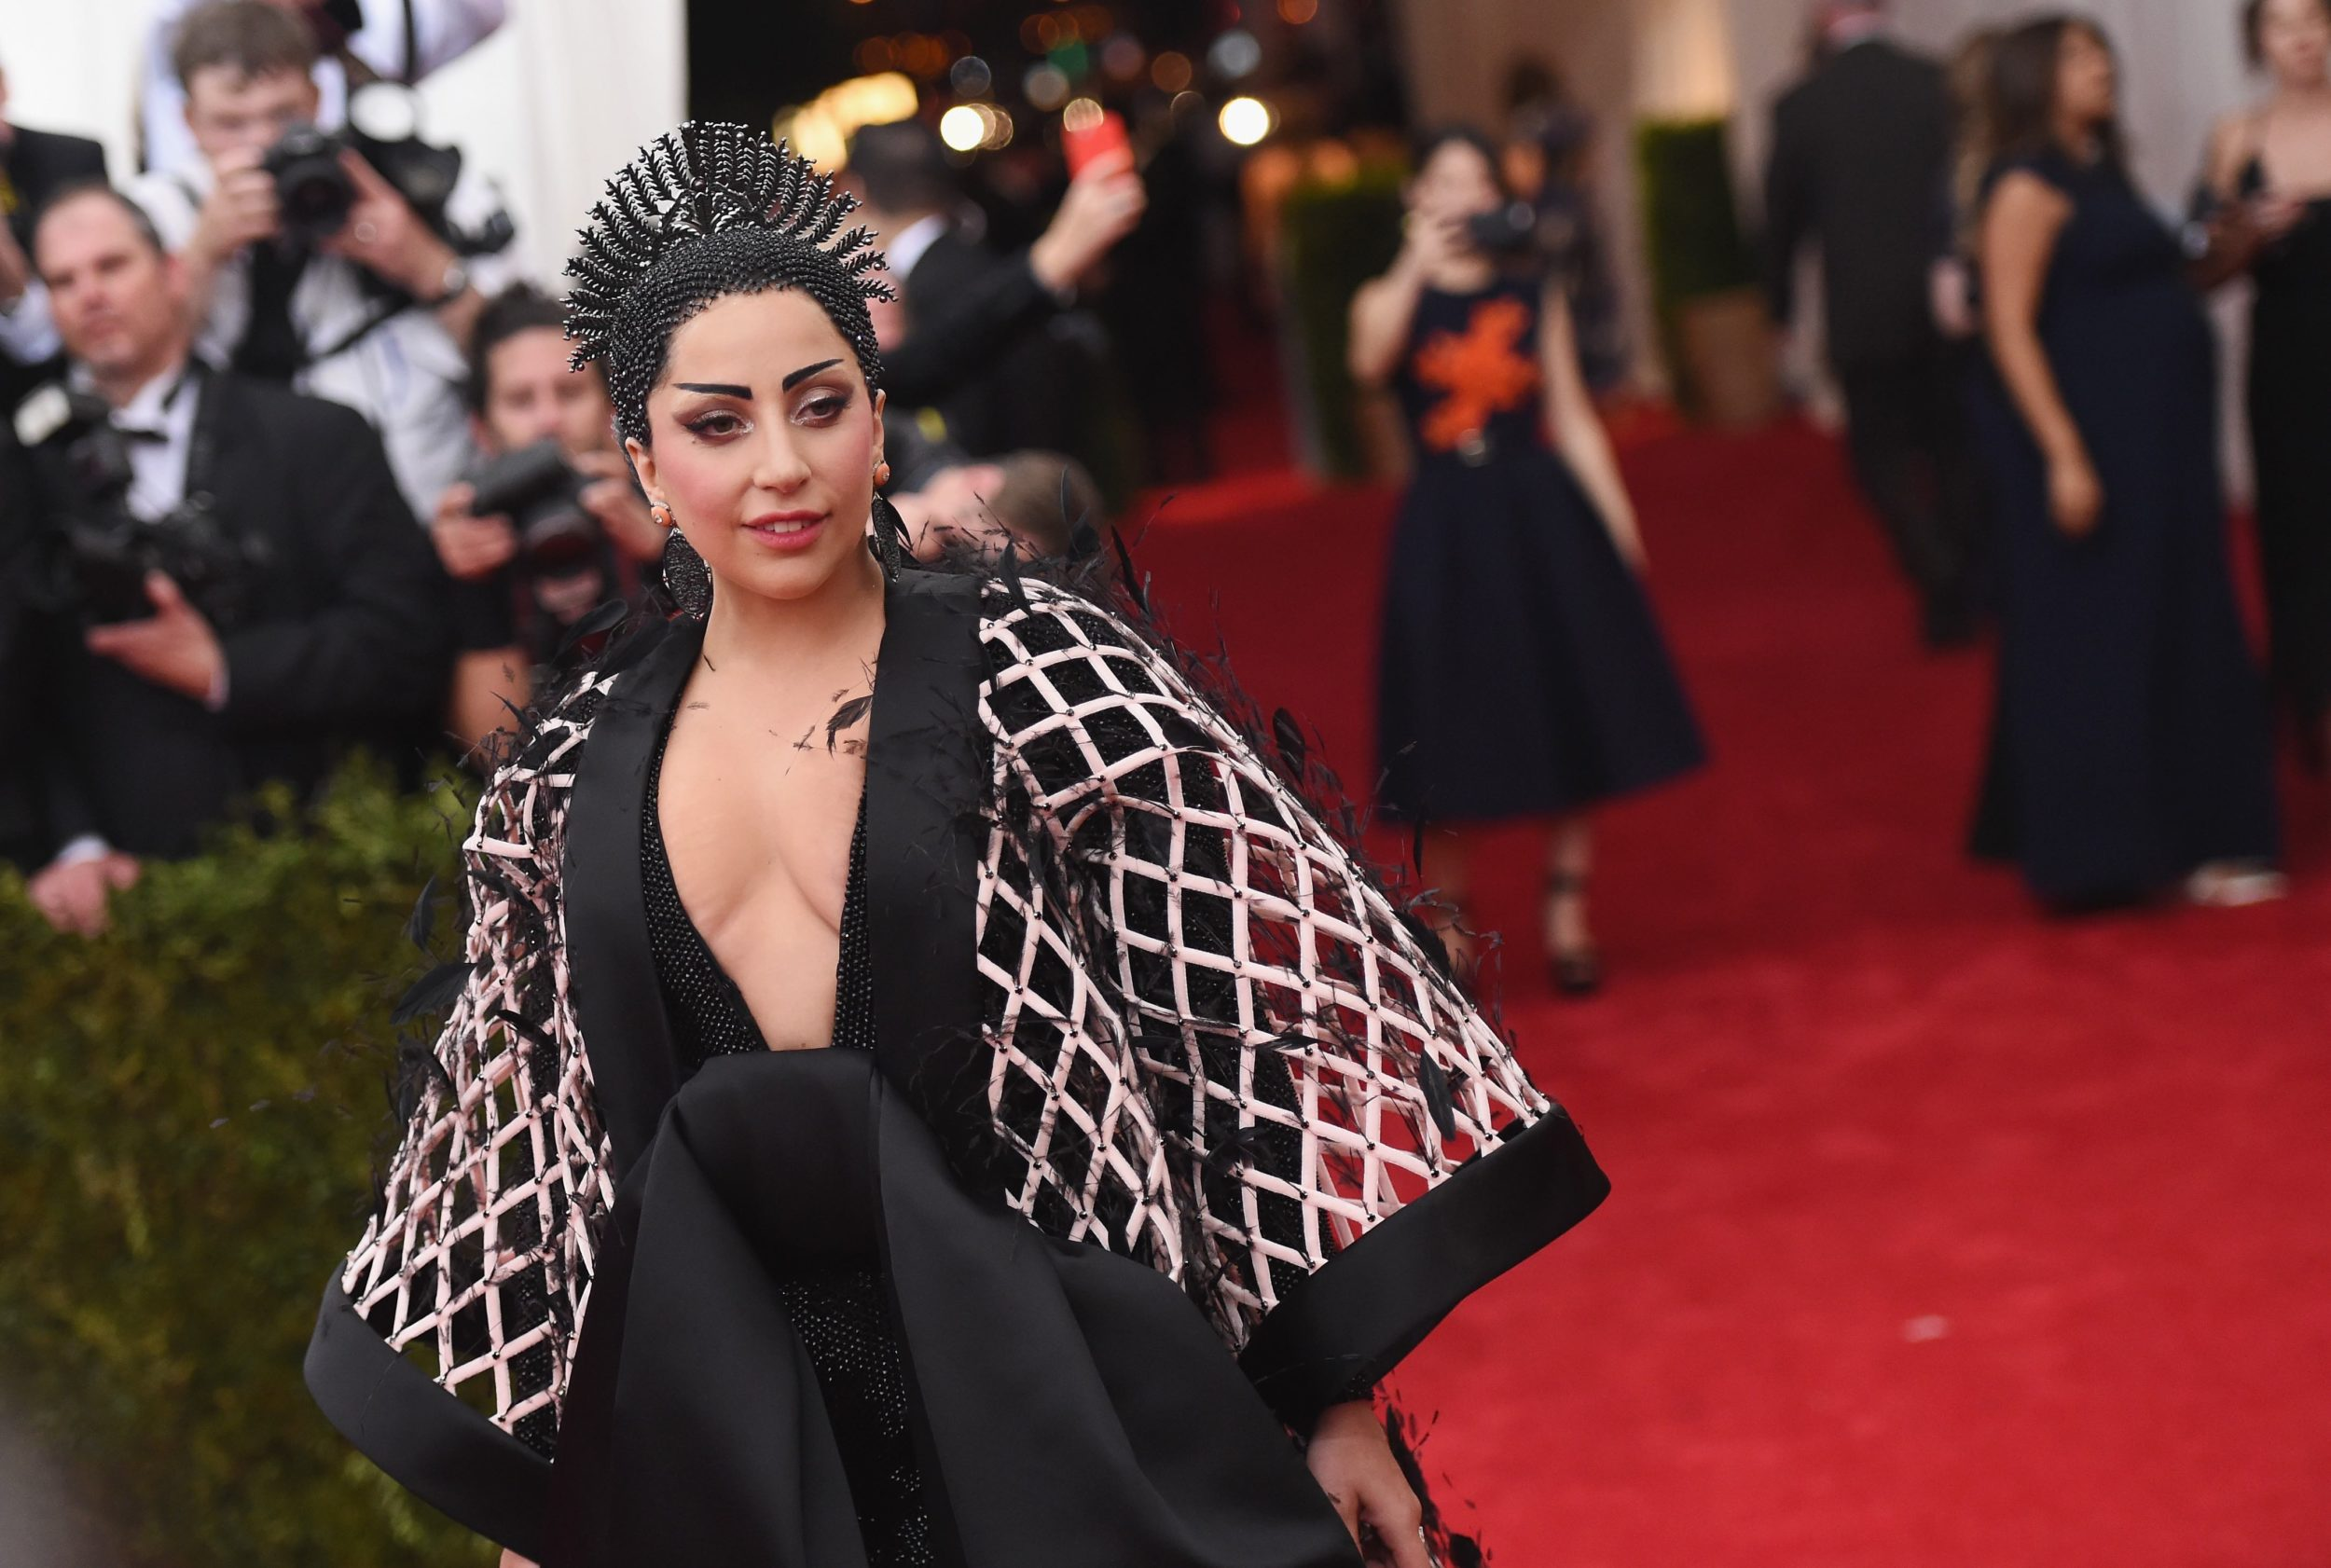 The 2019 Met Gala theme has just been revealed, and this is going to be epic